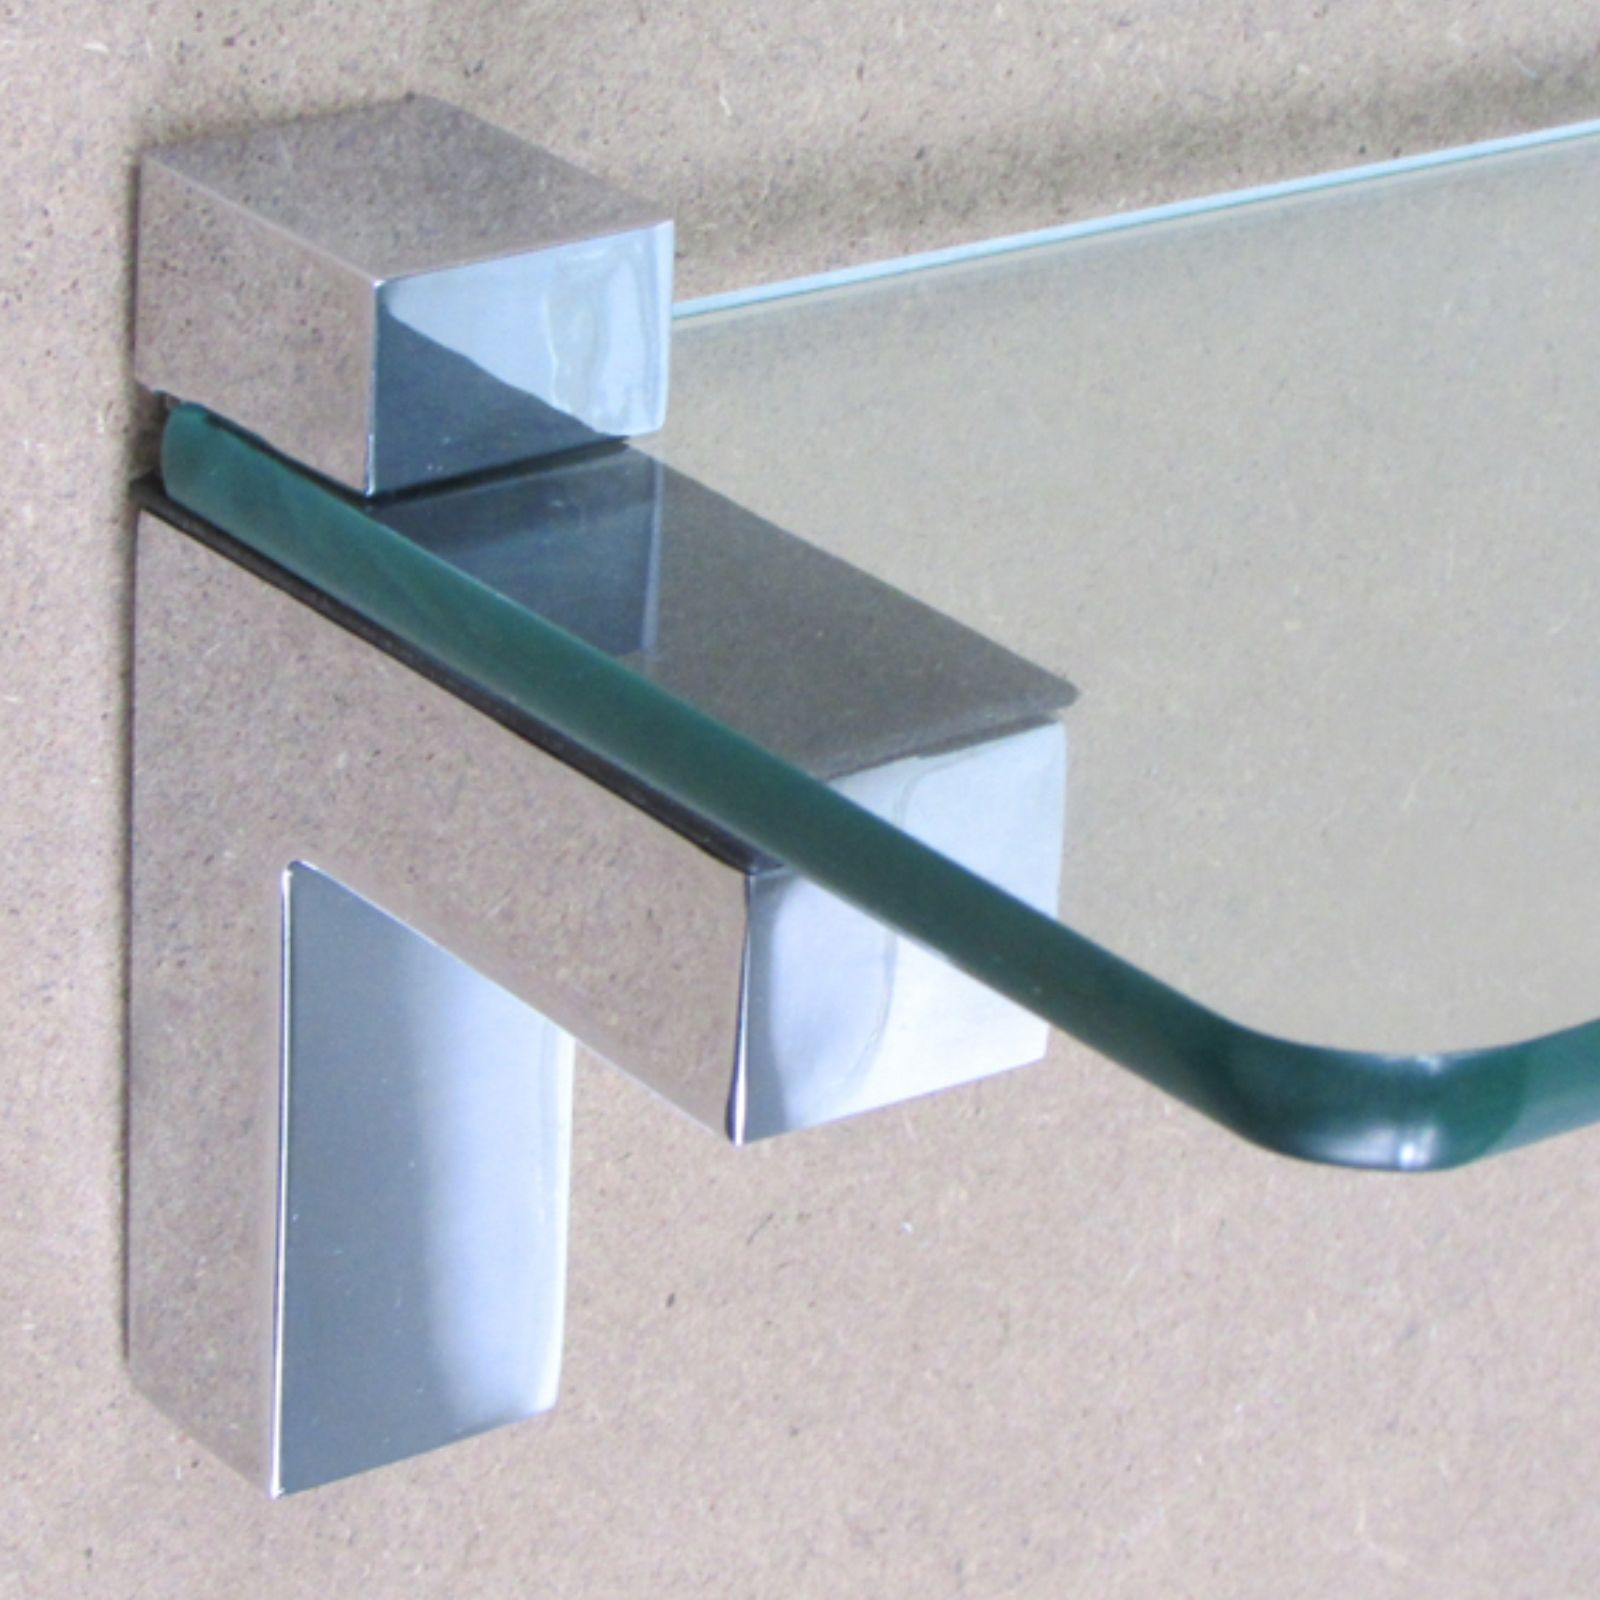 Shelf Brackets For Glass Wooden Acrylic Shelves Hold 2 mm